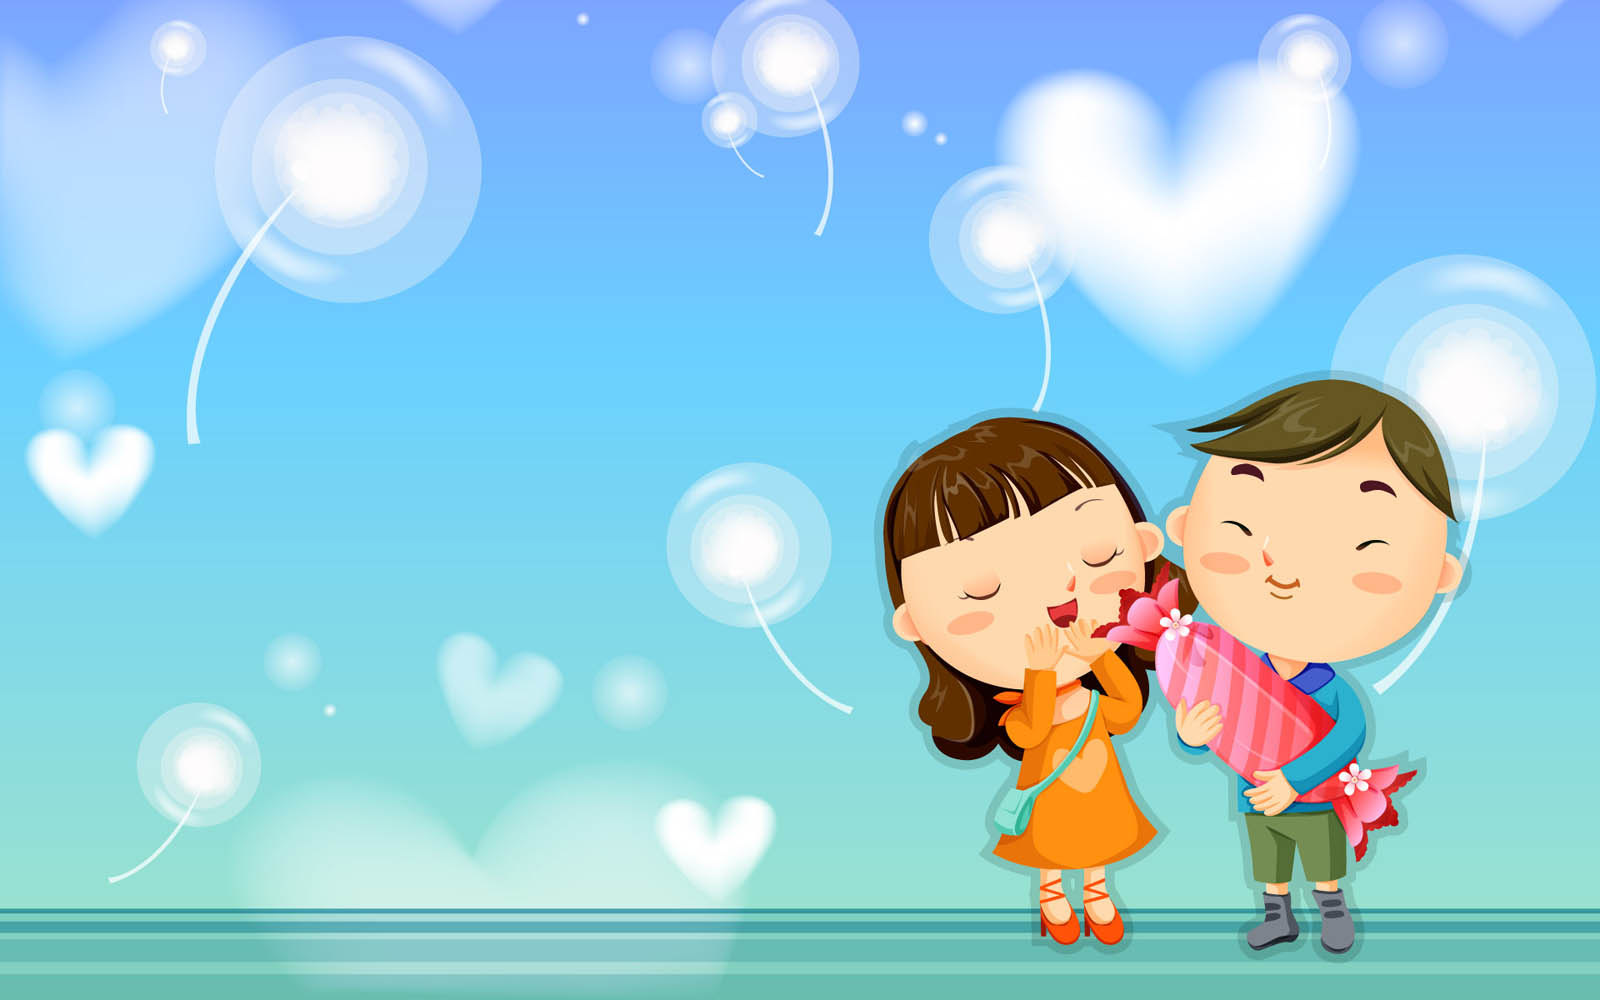 Wallpaper Kartun Cinta Romantis